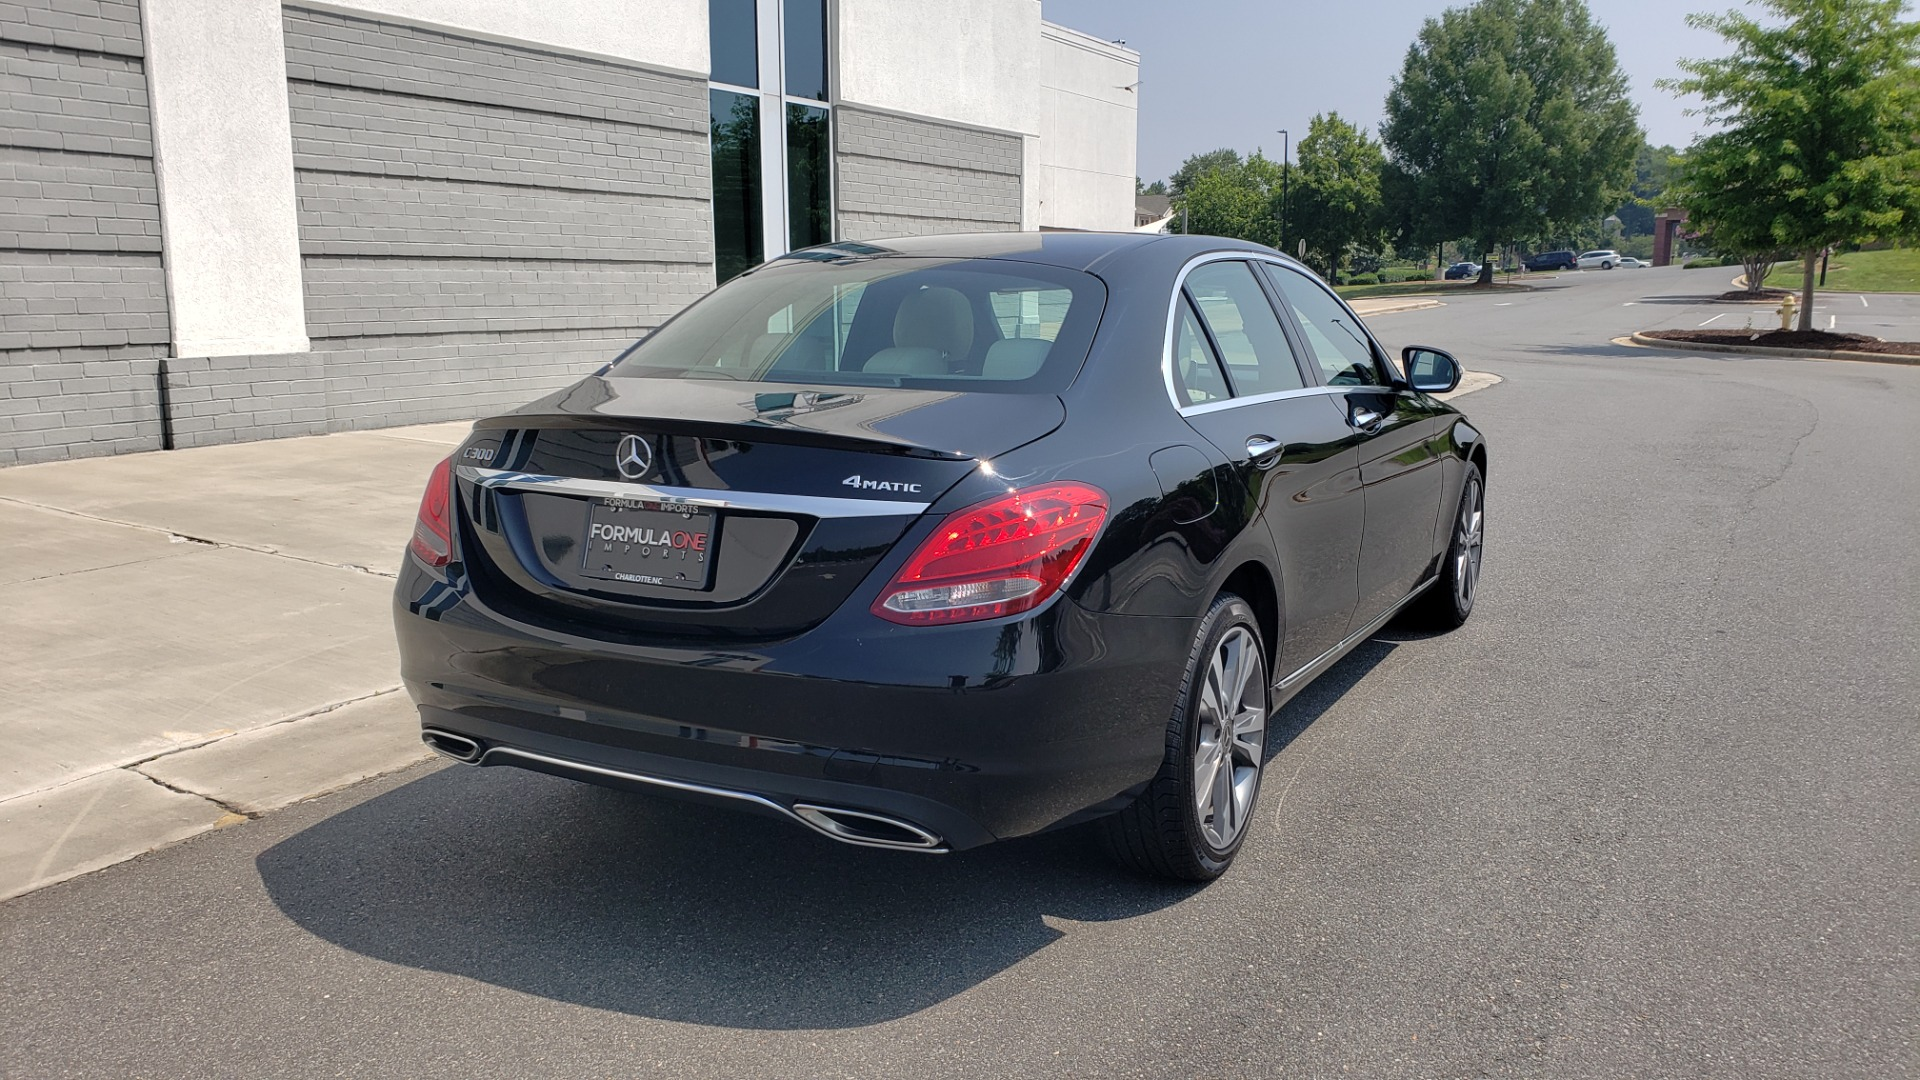 Used 2018 Mercedes-Benz C-CLASS C 300 4MATIC / PREMIUM / MULTIMEDIA / NAV / PANO-ROOF / BURMESTER for sale $30,495 at Formula Imports in Charlotte NC 28227 8